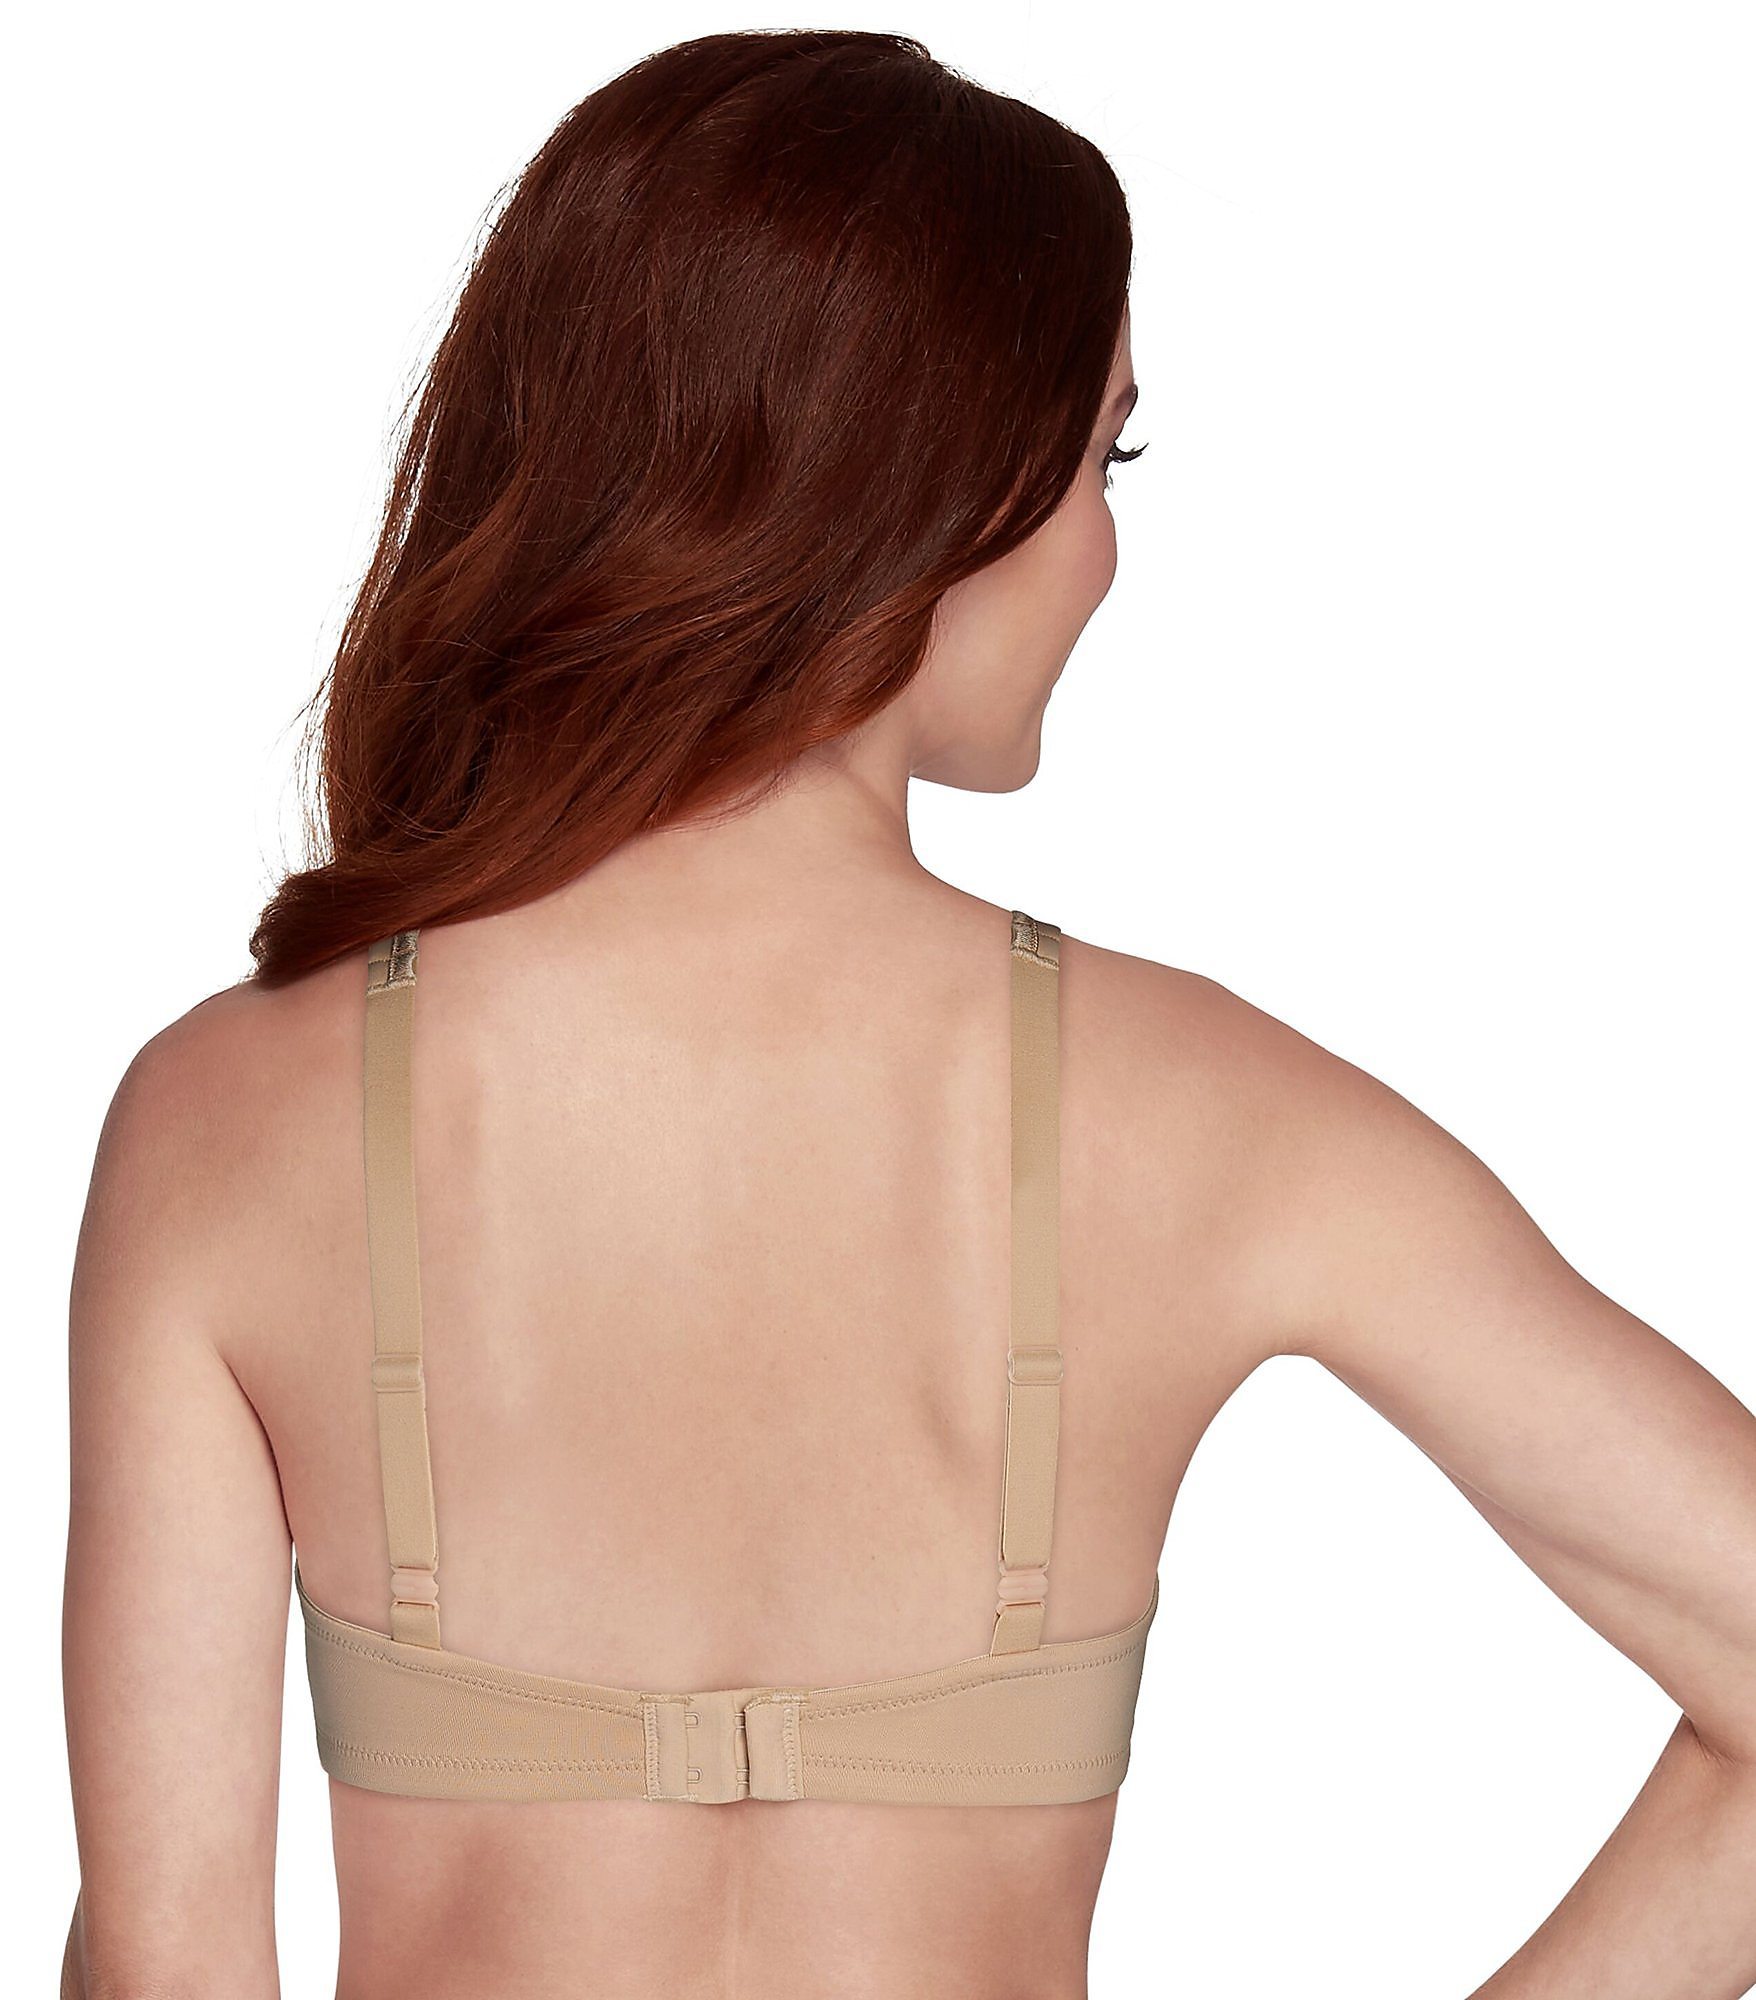 Details about  /Vanity Fair Body Caress Wirefree Bra 72335